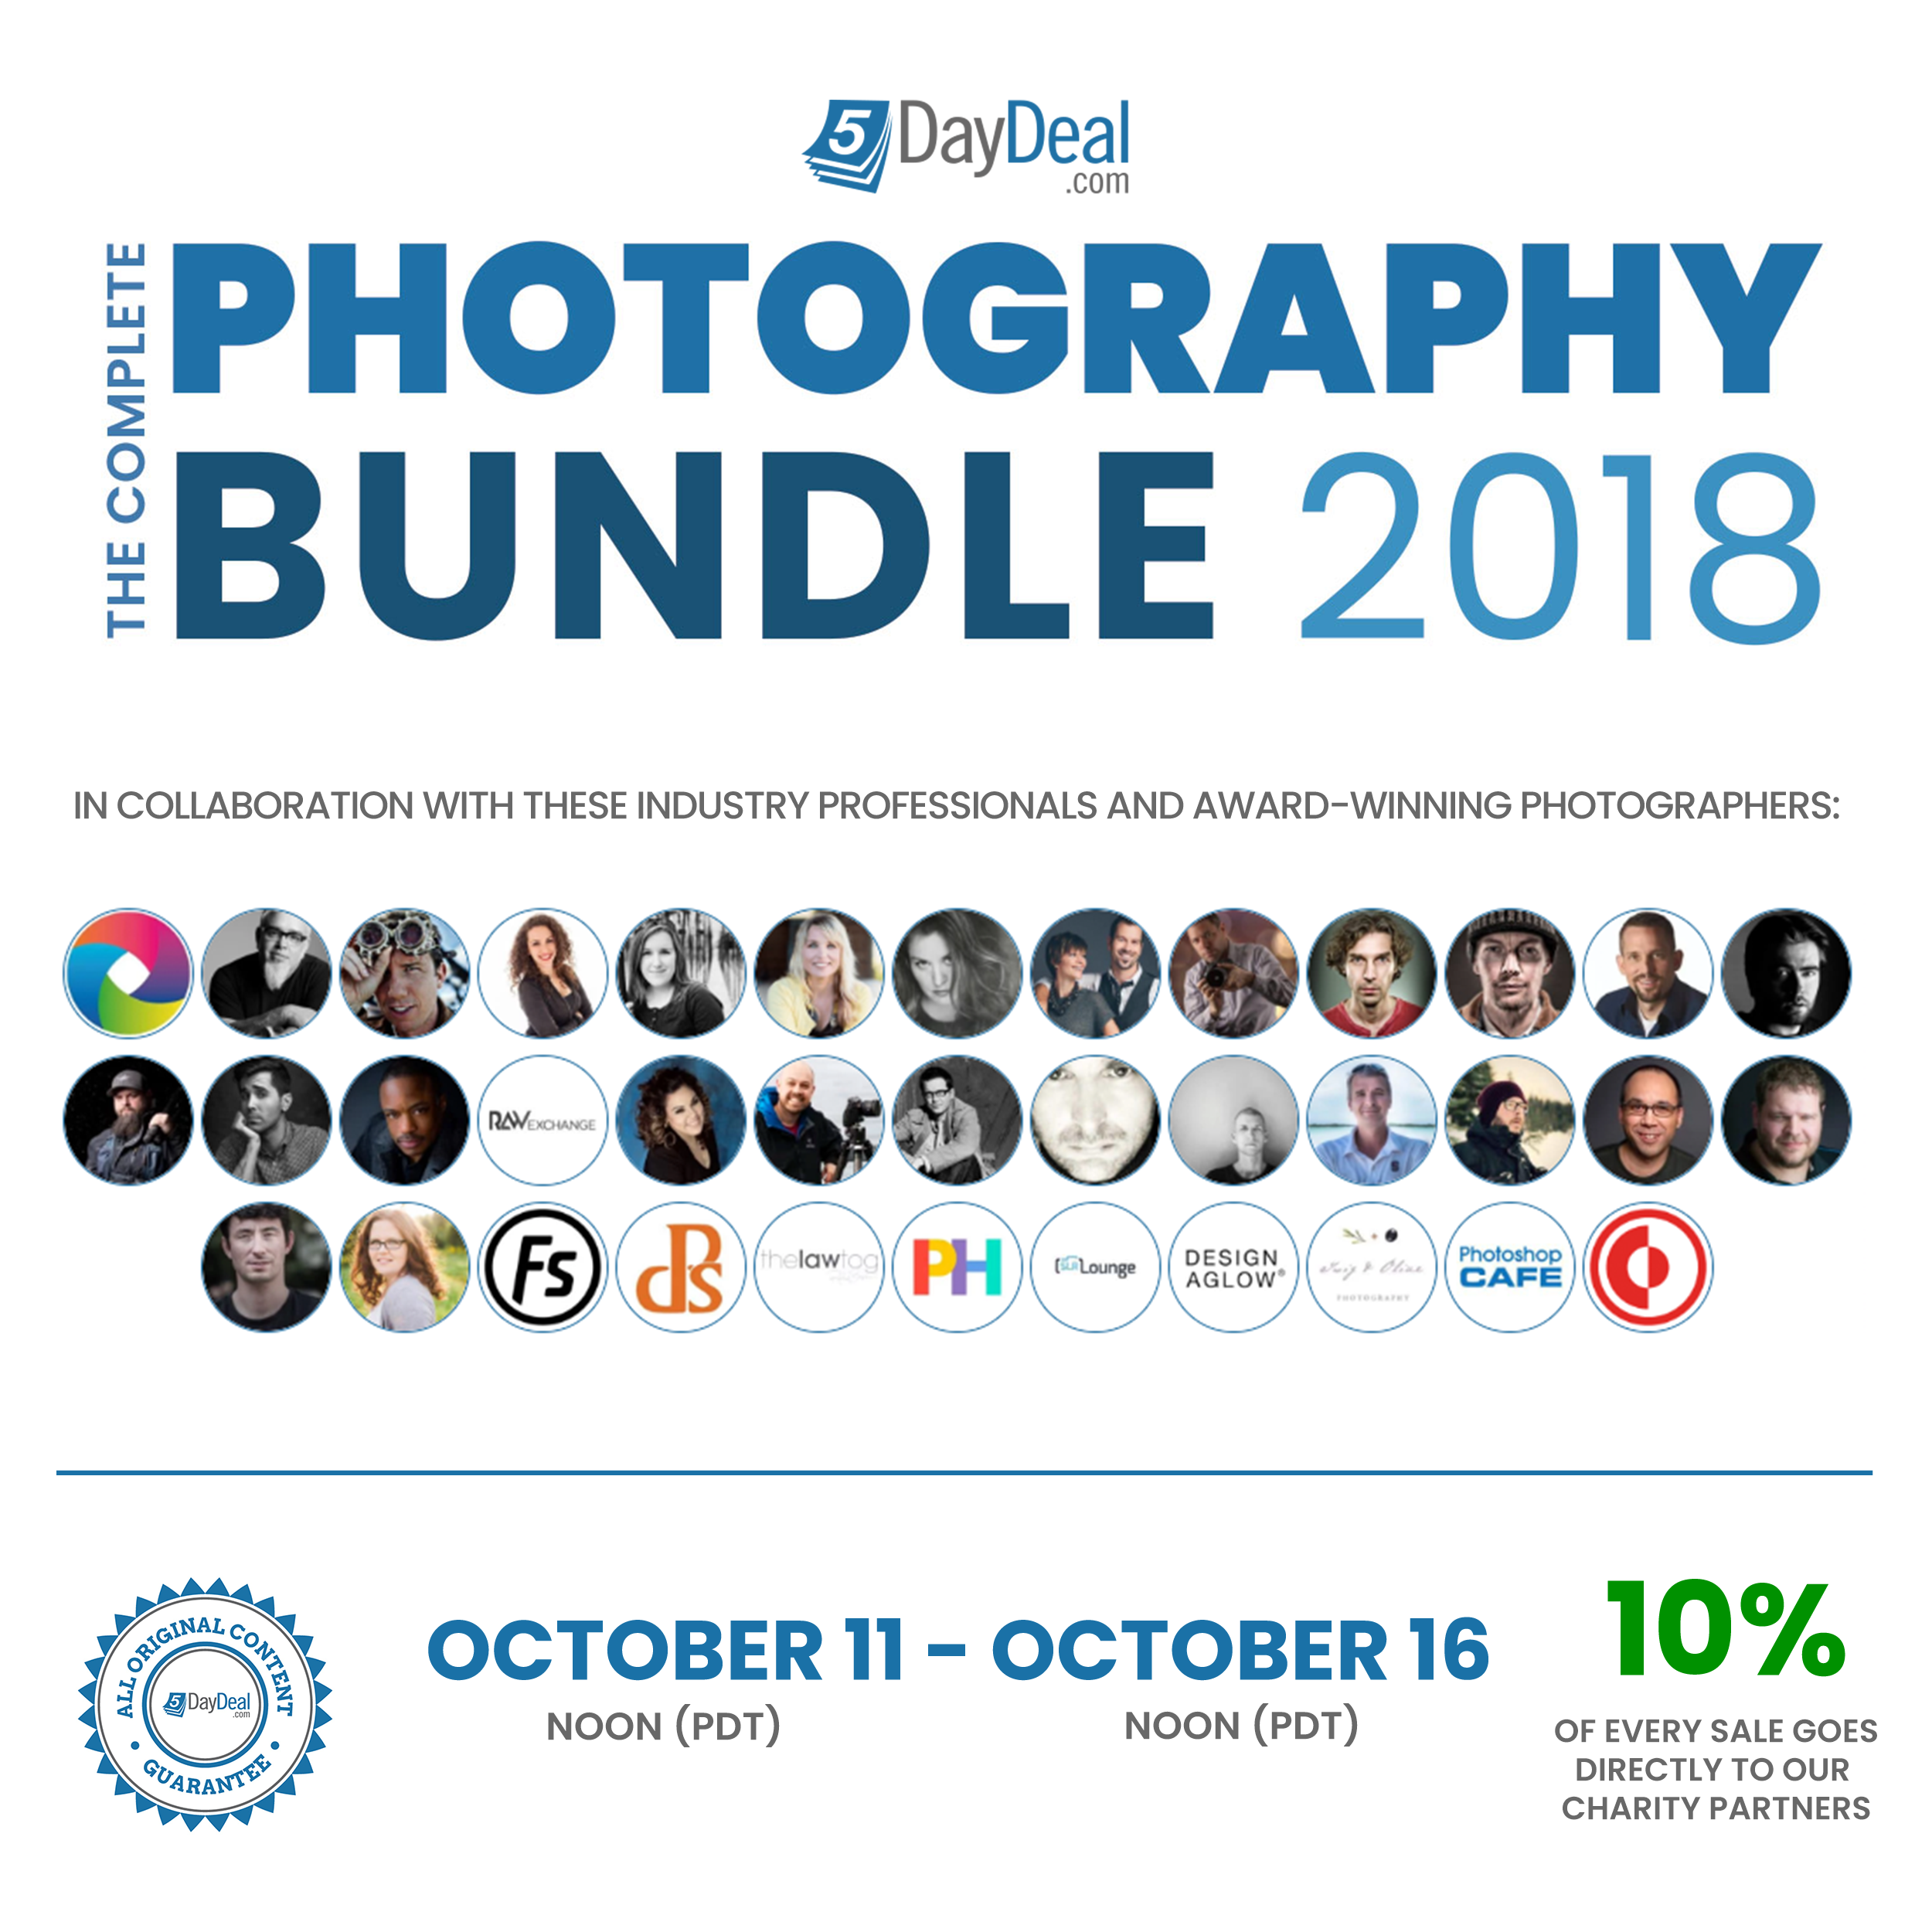 Cheap Photo: Save $2,582 When You Purchase the Complete Photography Bundle for Just $89